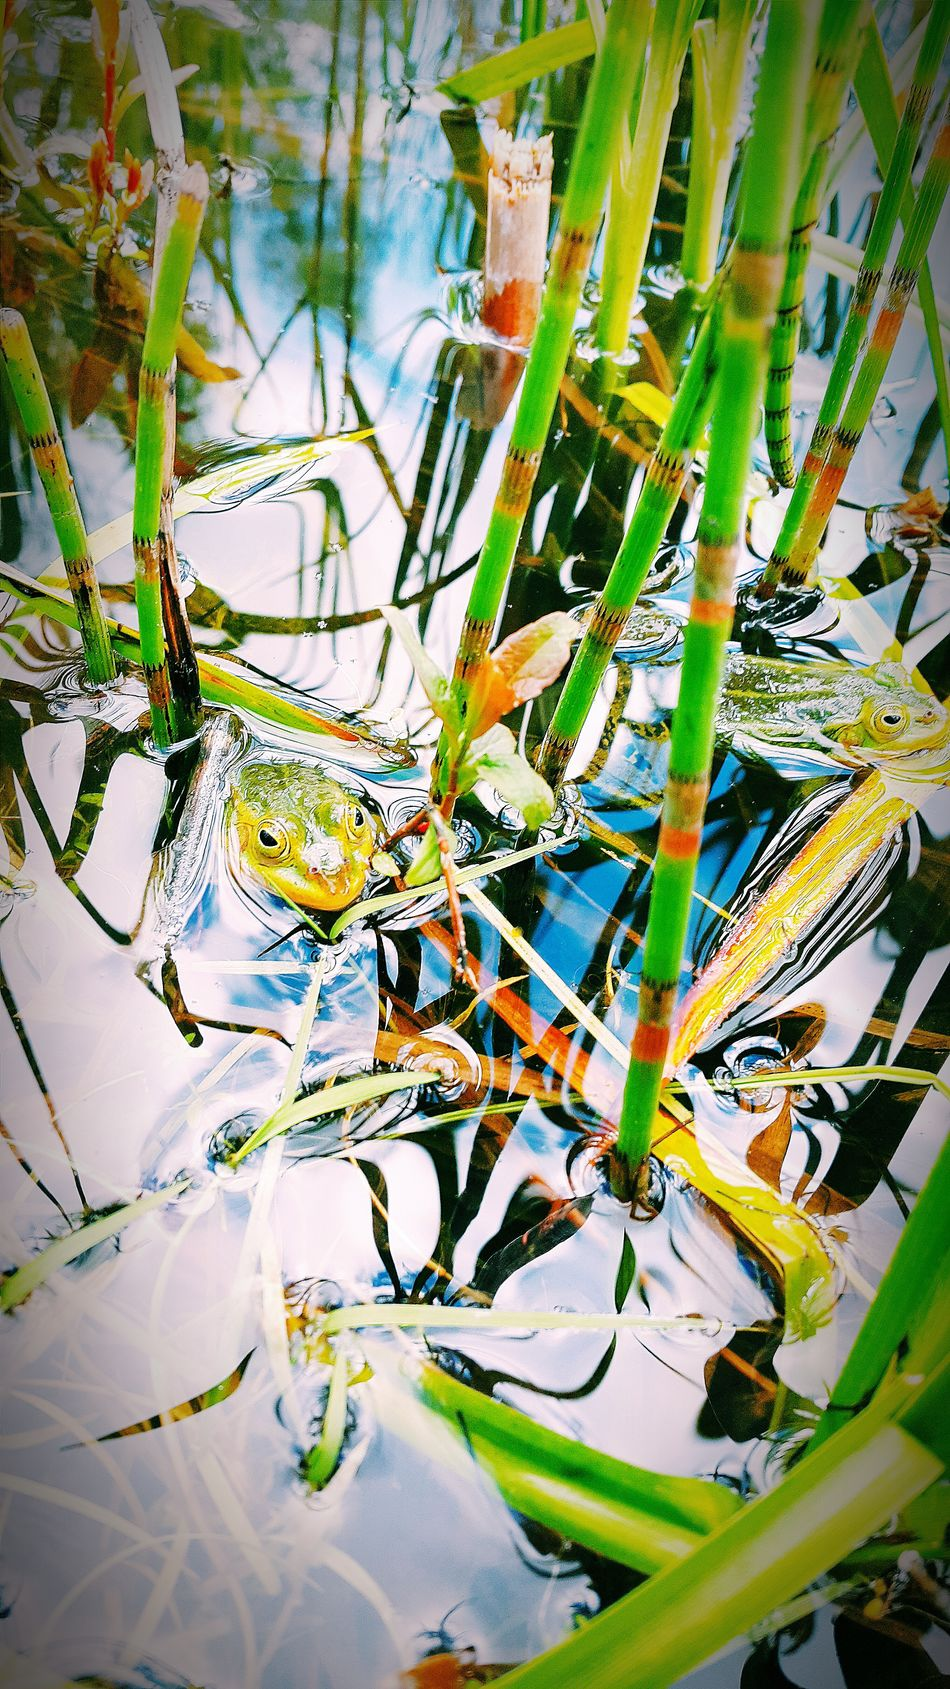 Taking Photos Nature_collection Nature Photography Mobile Photography Popular Photos Macro Photography Beautiful Nature Frogs Green Frog Mobile Artist